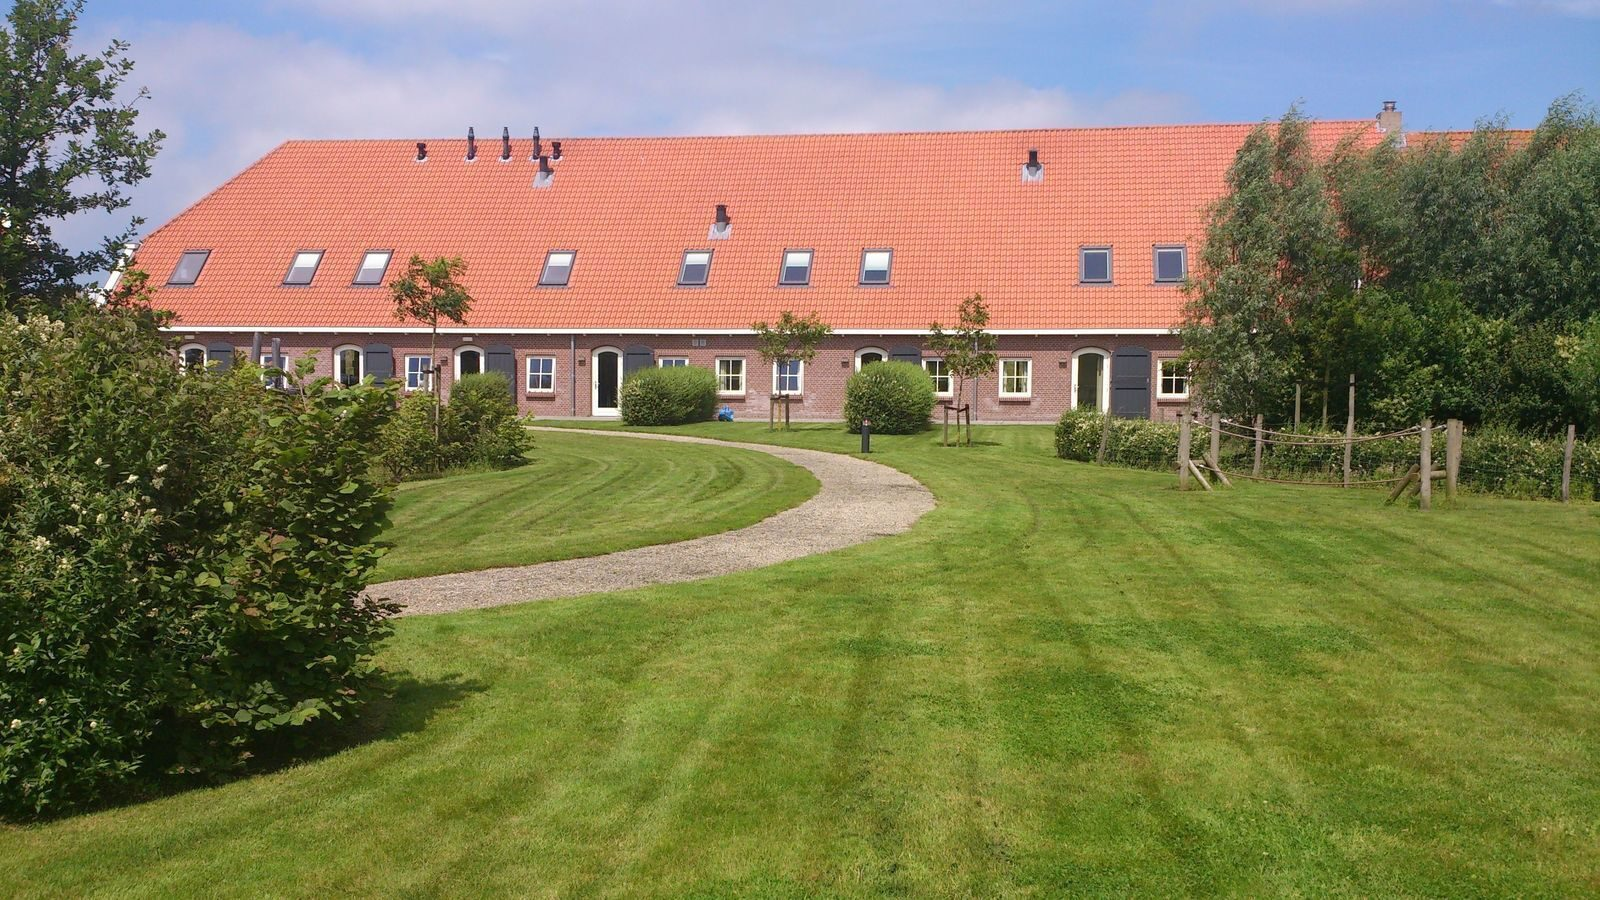 Rent a family home in Zeeland